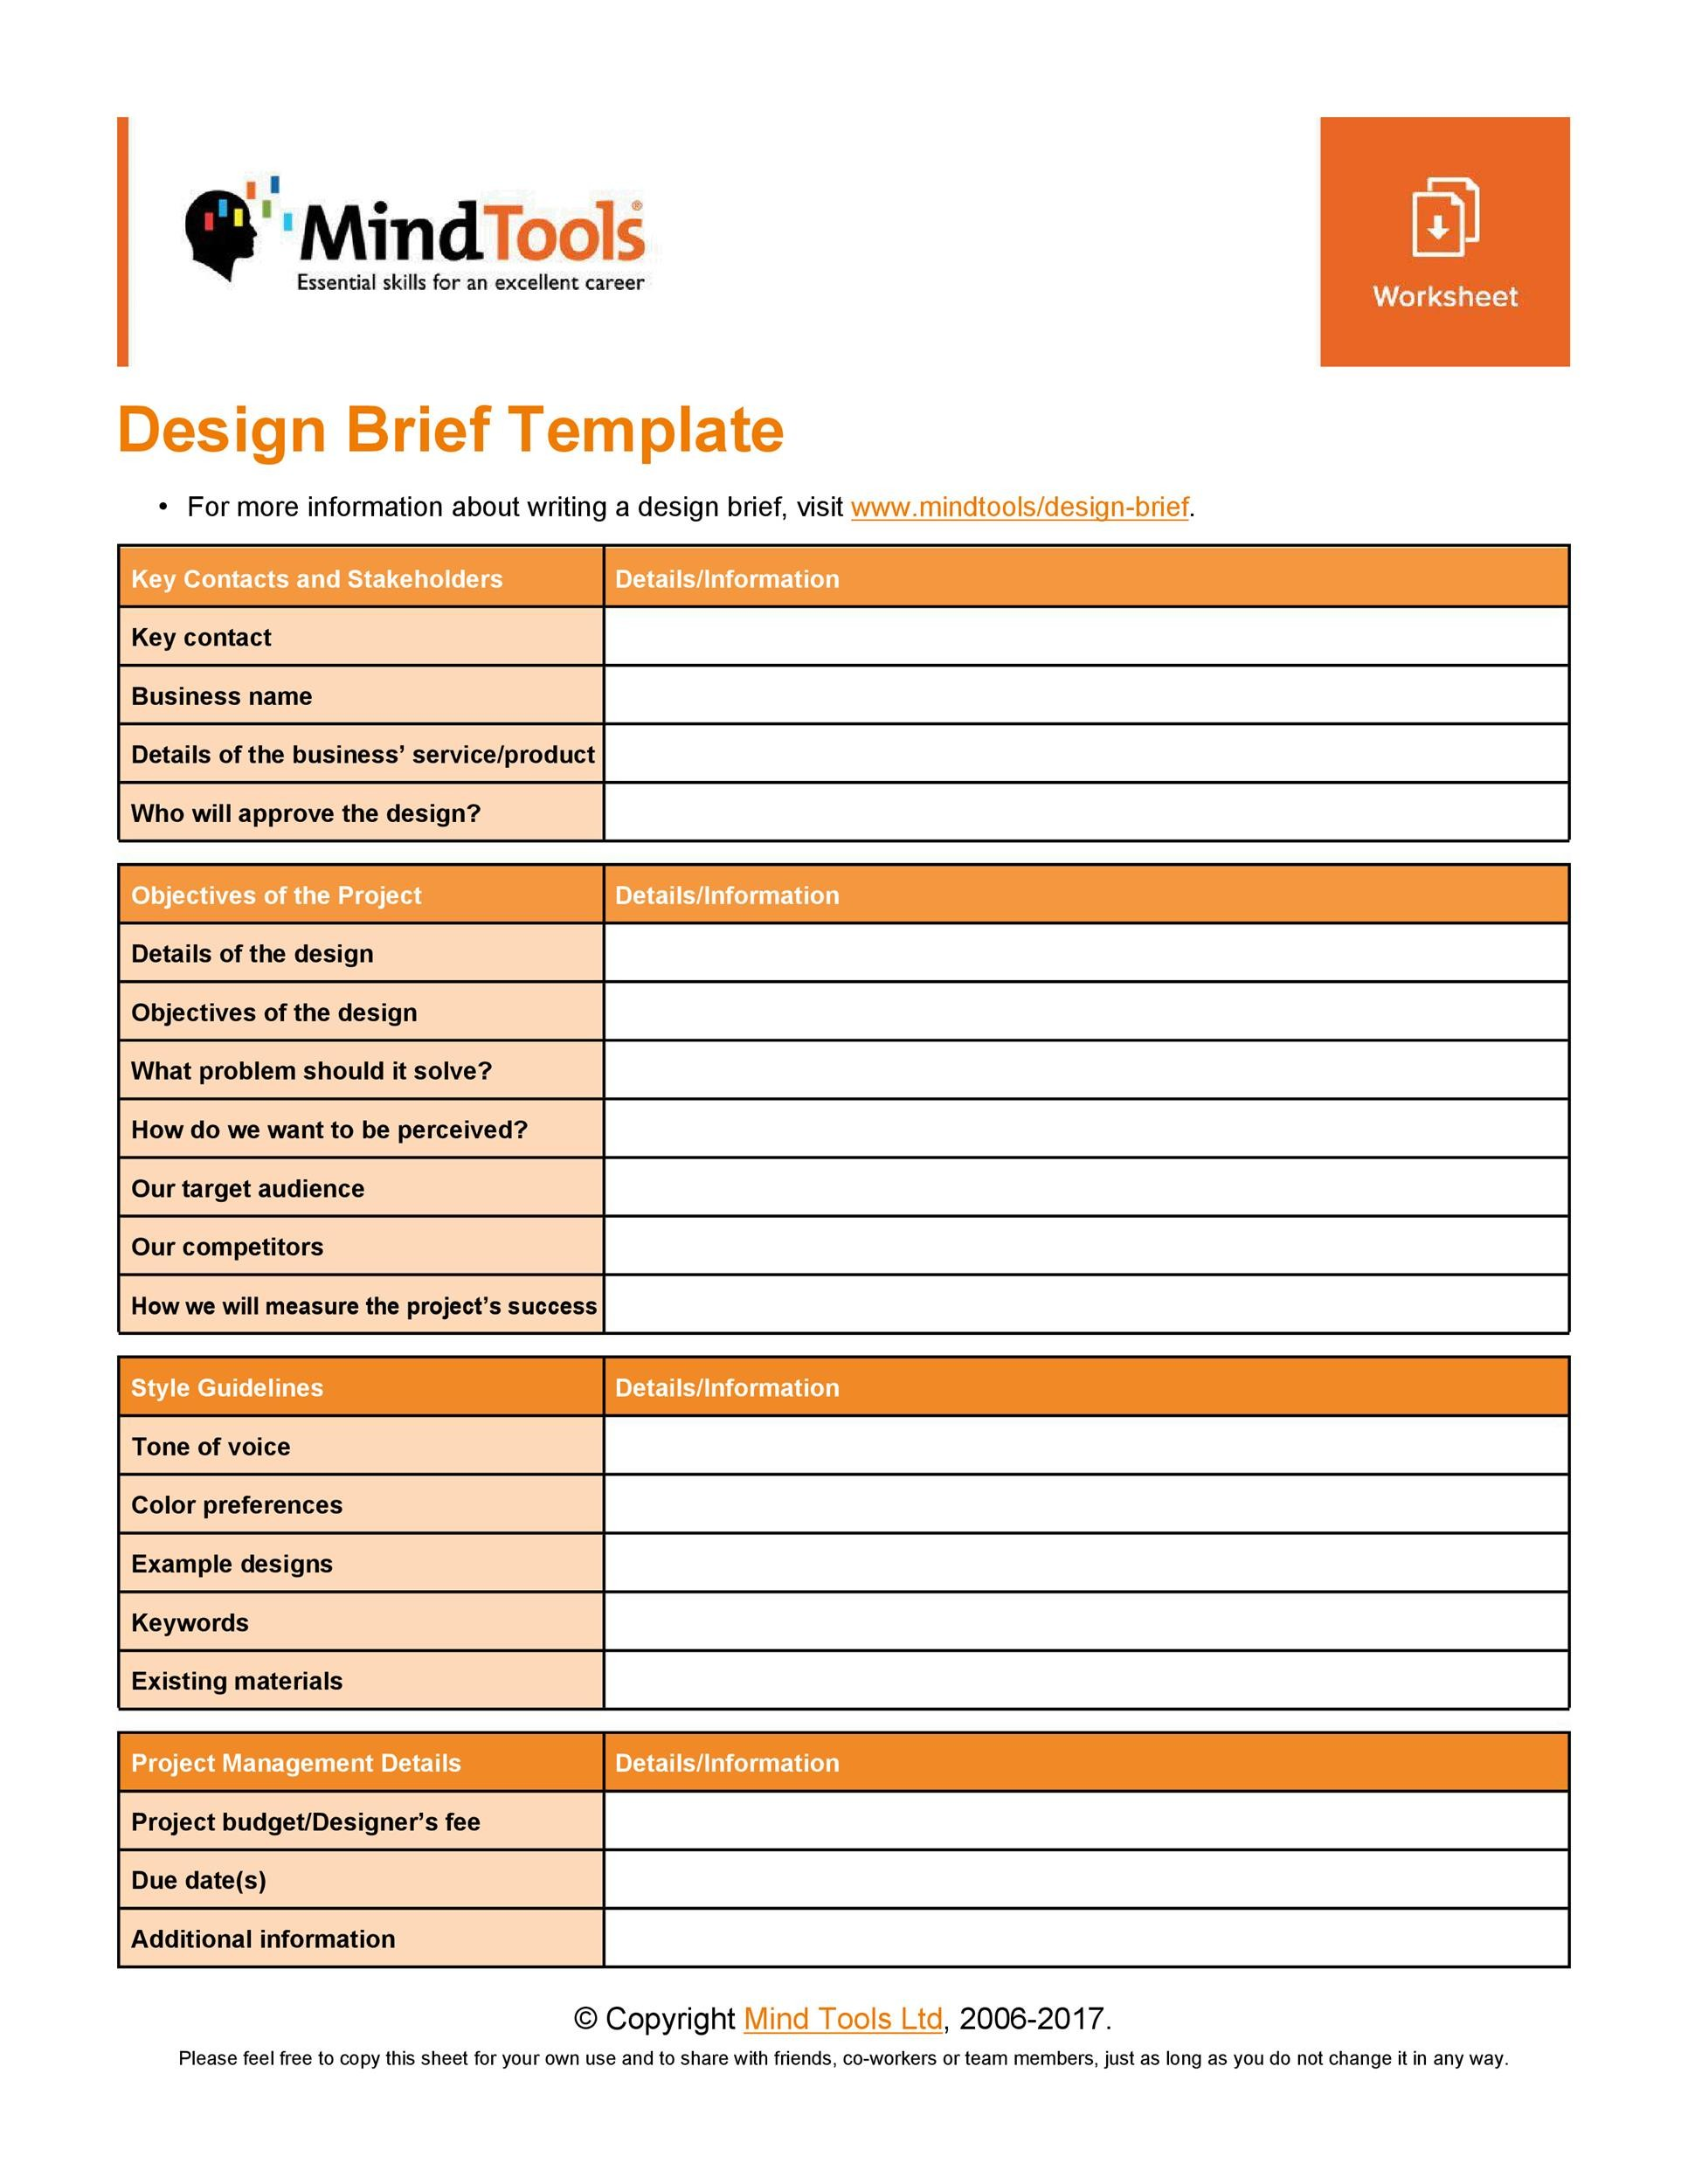 Free design brief template 22